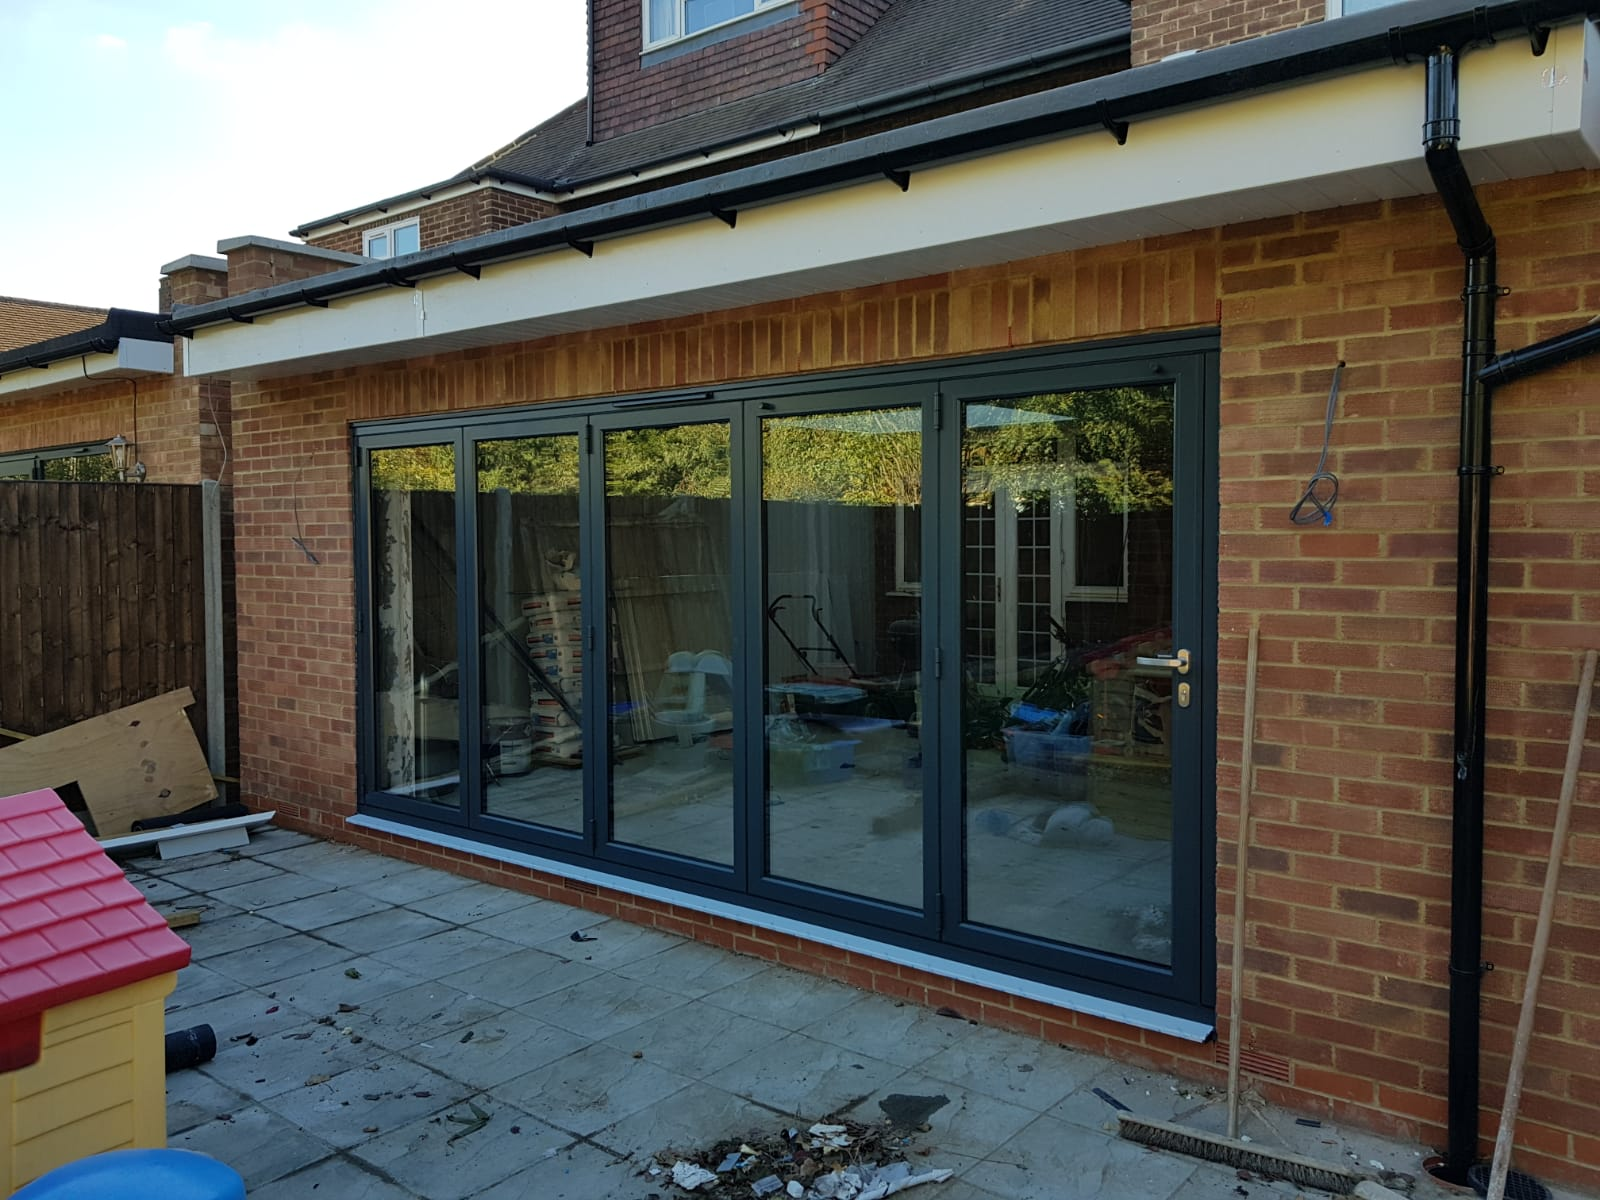 Worried bifolds will be awkward to install at your home? Here's everything you need to know about why Origin bifolds are so simple to fit. Includes overcoming limited access issues, made to measure doors & express delivery.